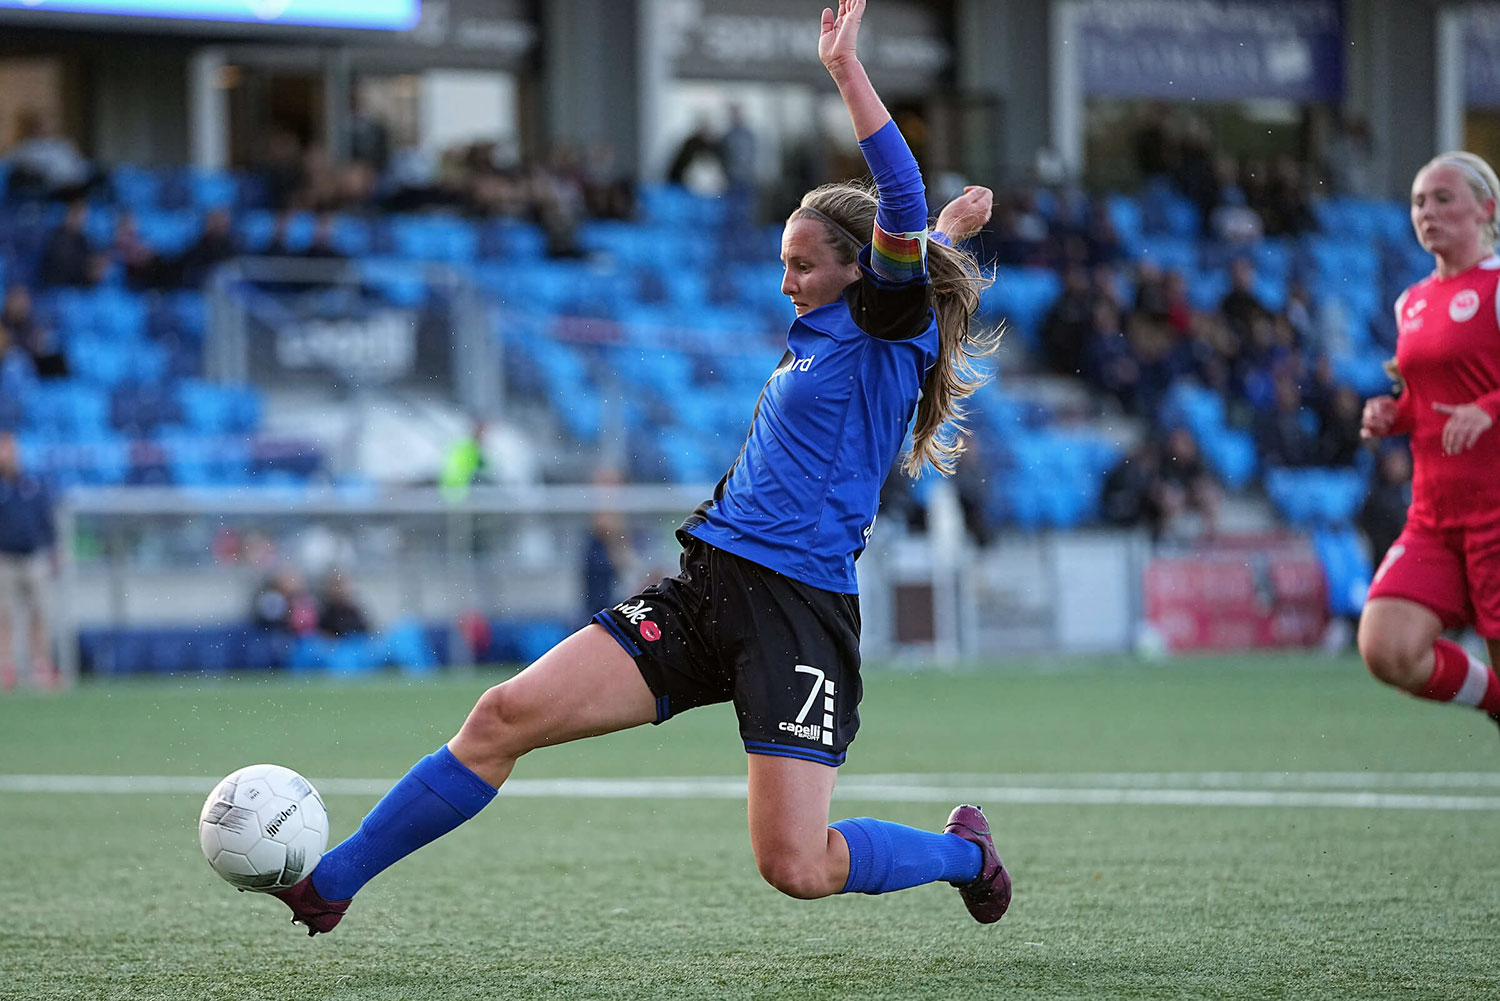 Striker Kyra Carusa sliding for the ball while playing for HB Køge. (HB Køge)